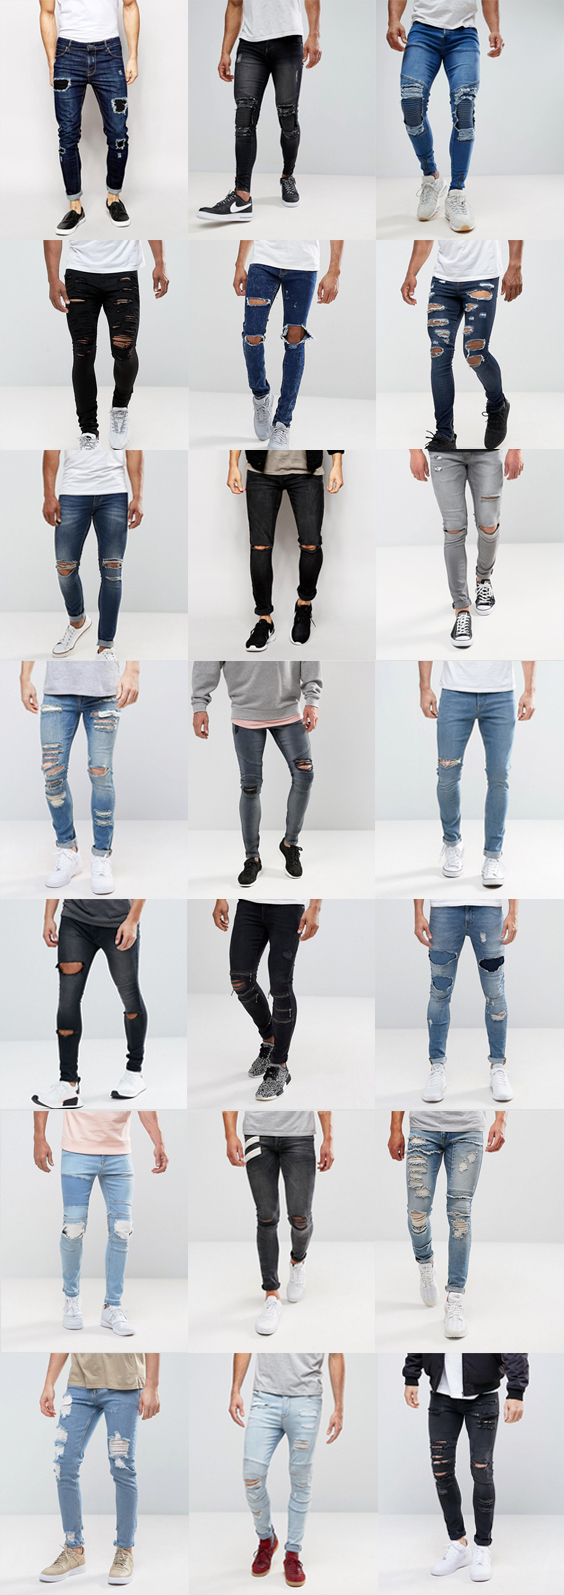 21 Super Skinny Jeans With Rips for Guys